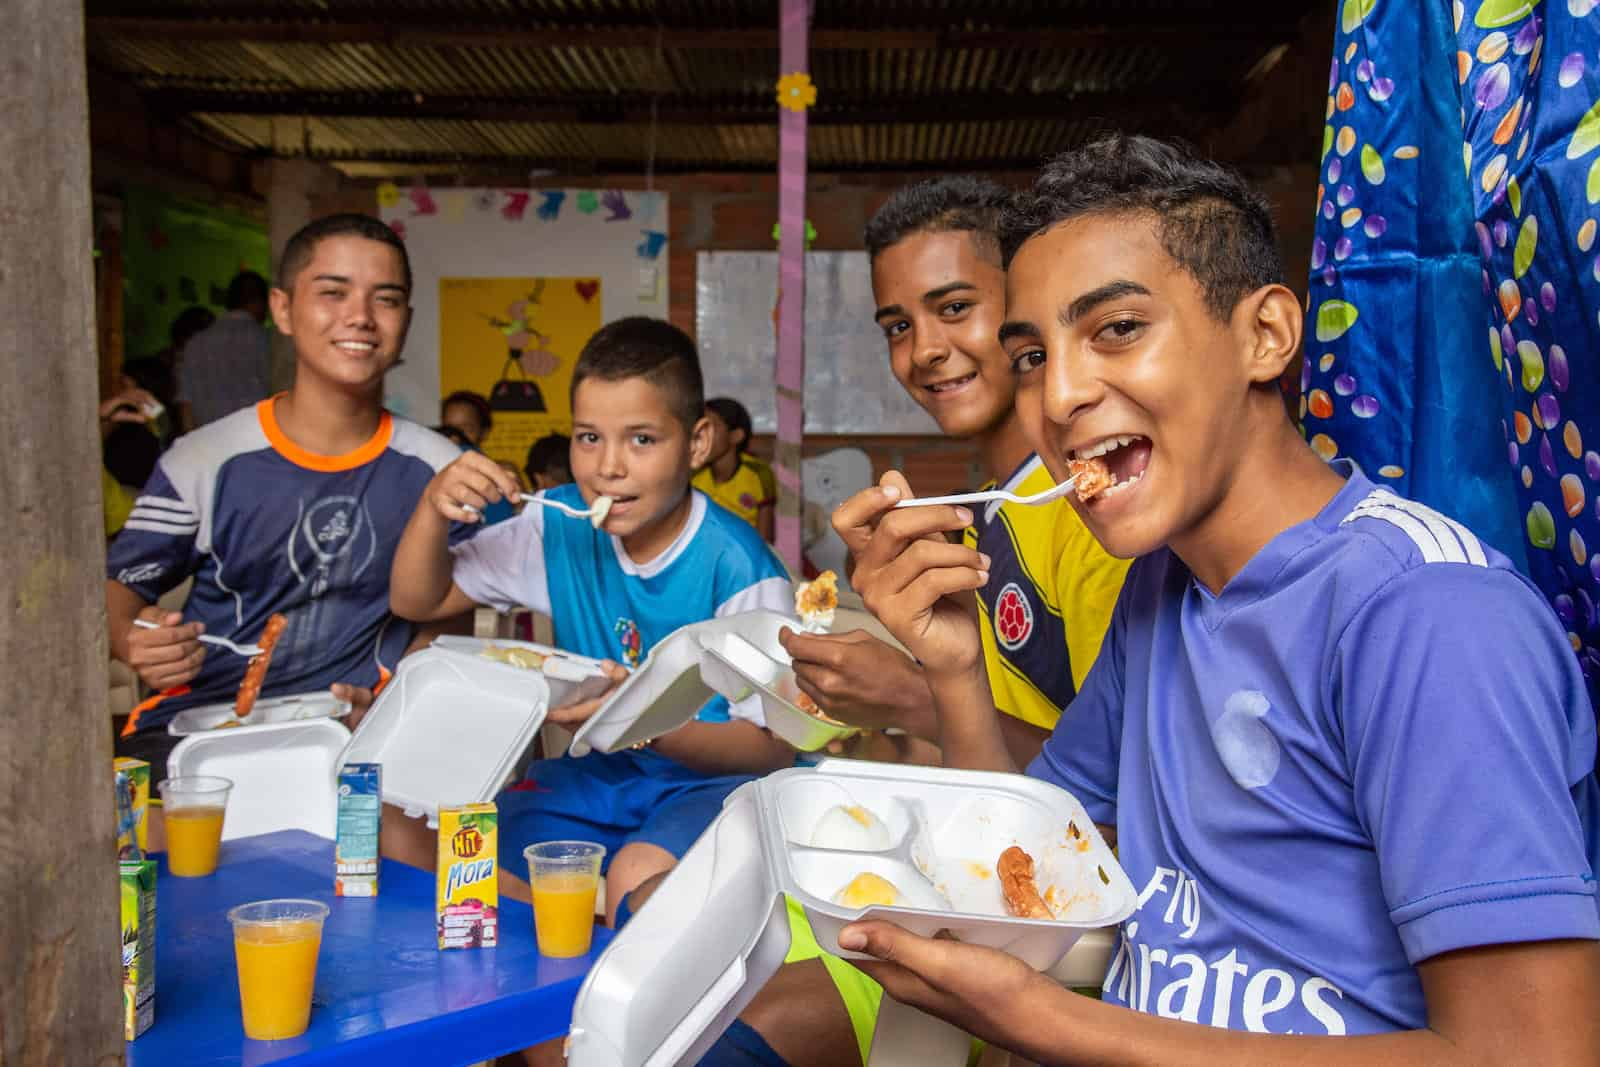 Boys sit around a table eating food out of styrofoam containers, smiling at the camera.